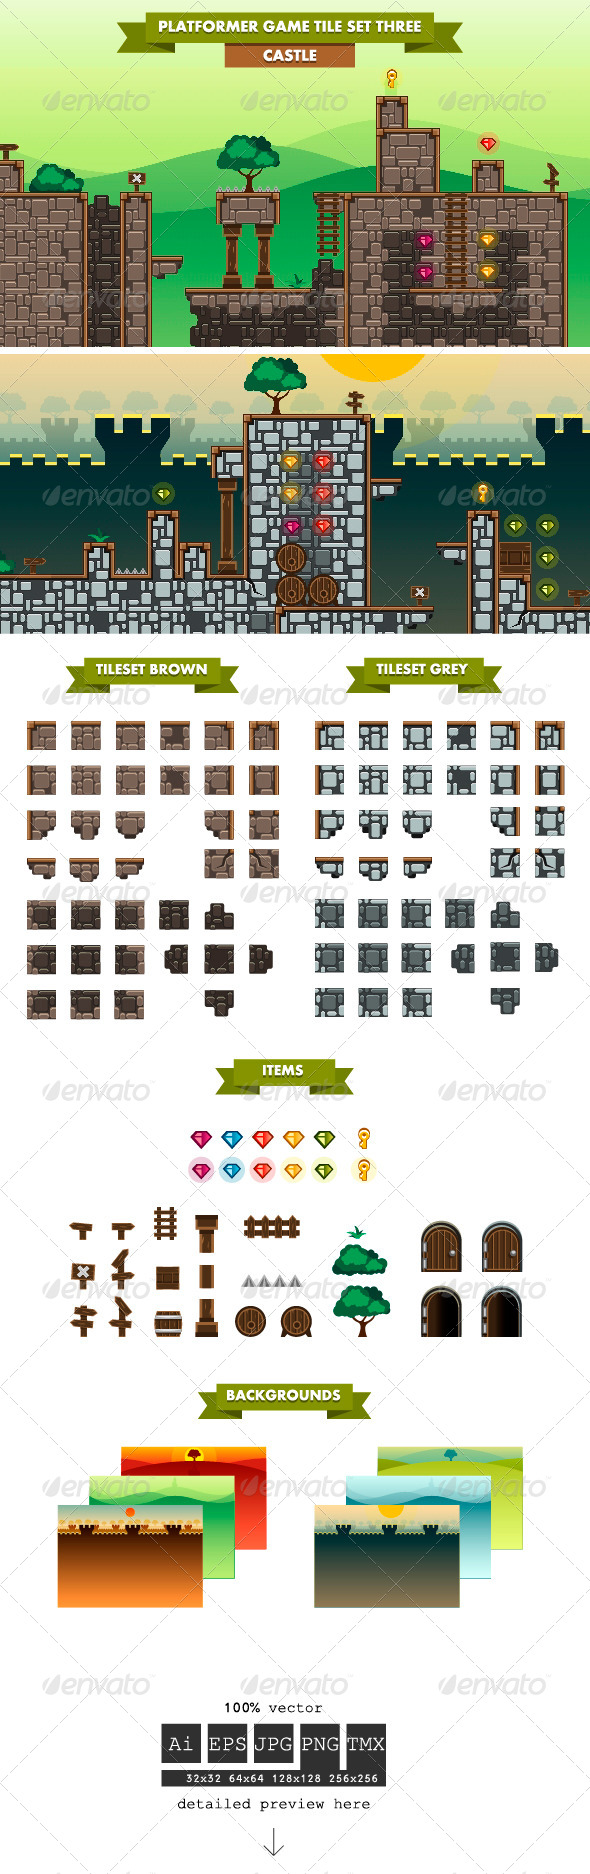 GraphicRiver Platformer Game Tile Set Three 6161241